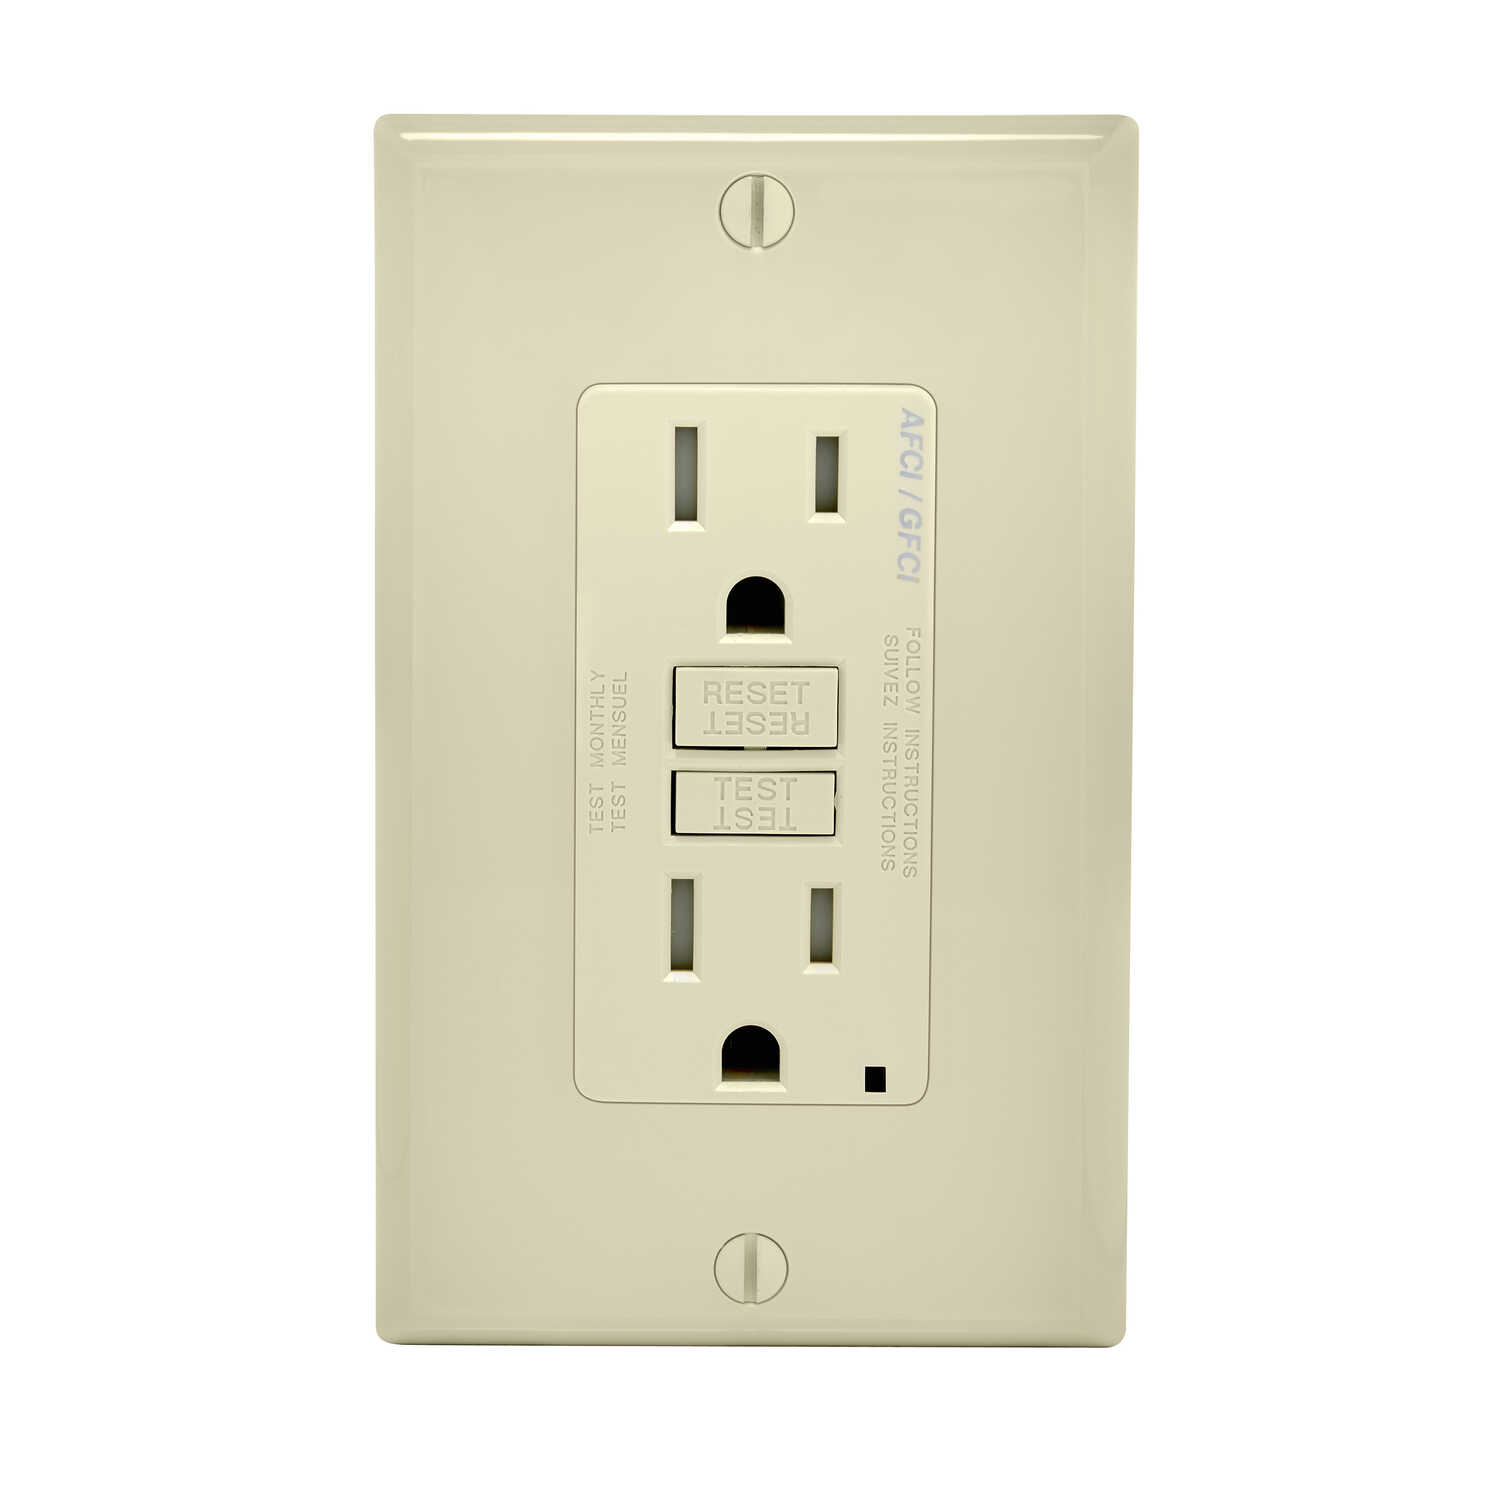 Leviton  Decora  15 amps 125 volt Light Almond  AFCI/GFCI Dual Function Outlet  5-15R  1 pk